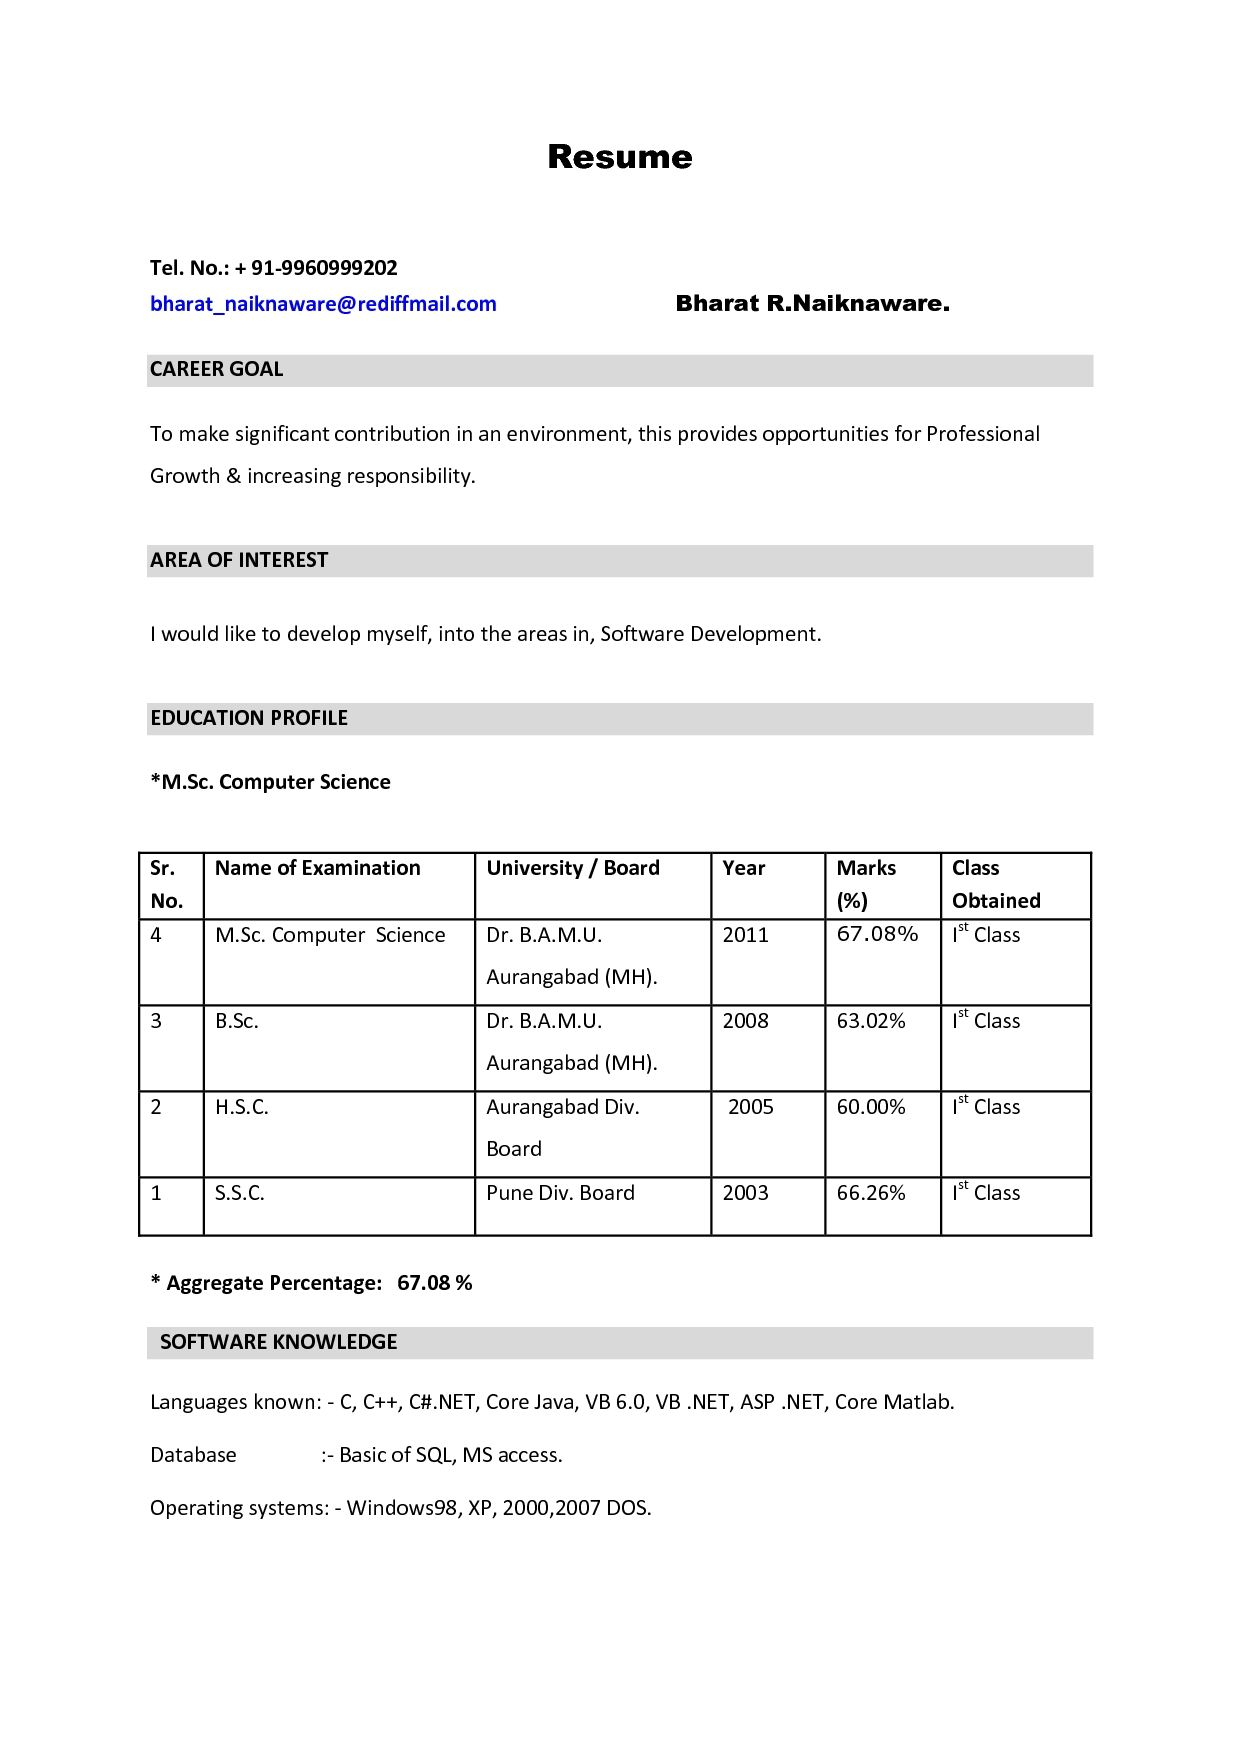 Best Resume Format Pdf For Freshers Sample Job Resume Format | vinay ...